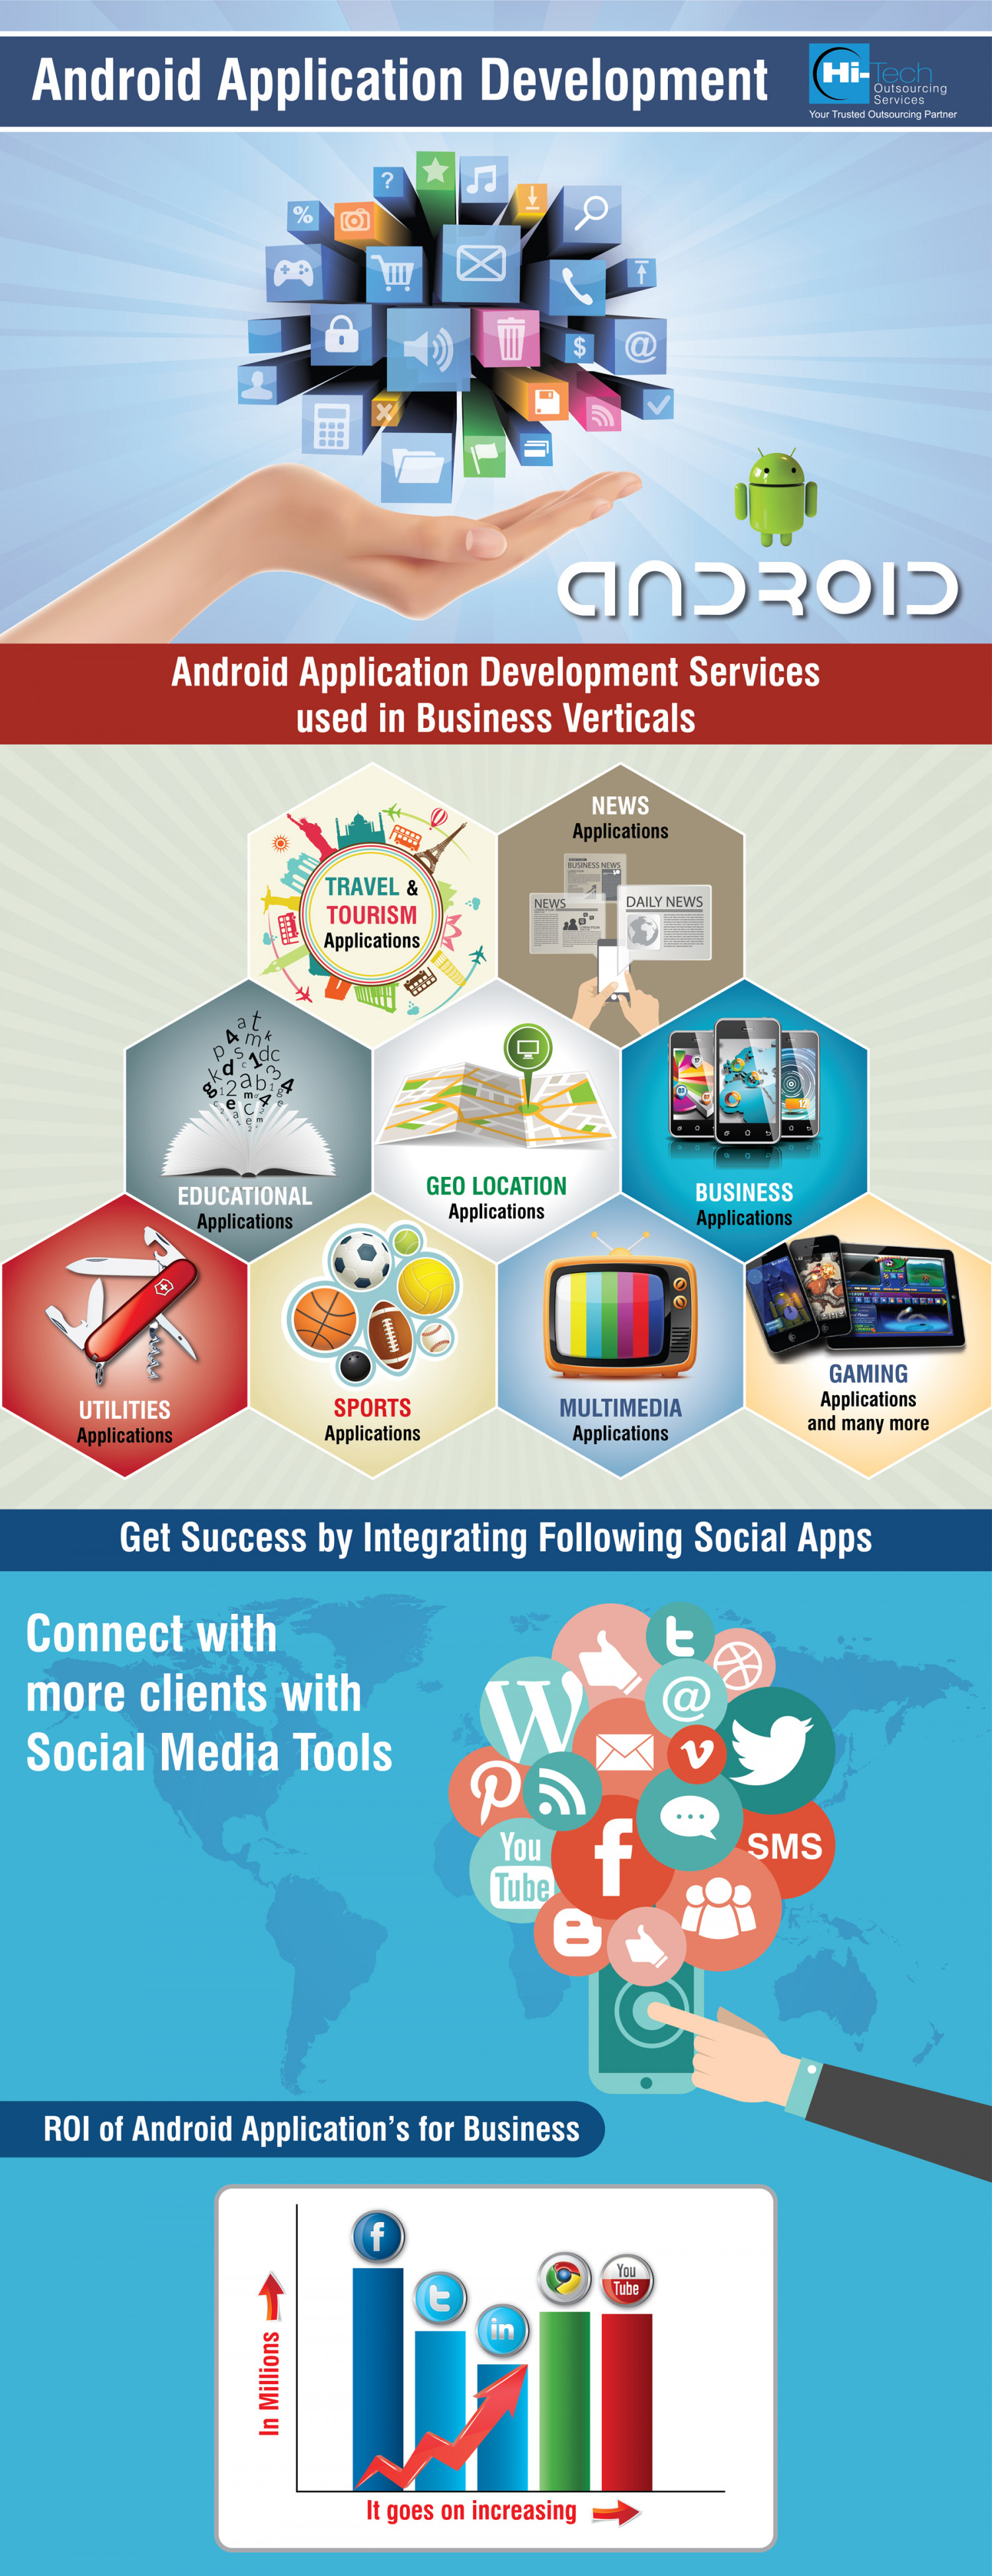 Android Application Development Services used in Business Verticals Infographic